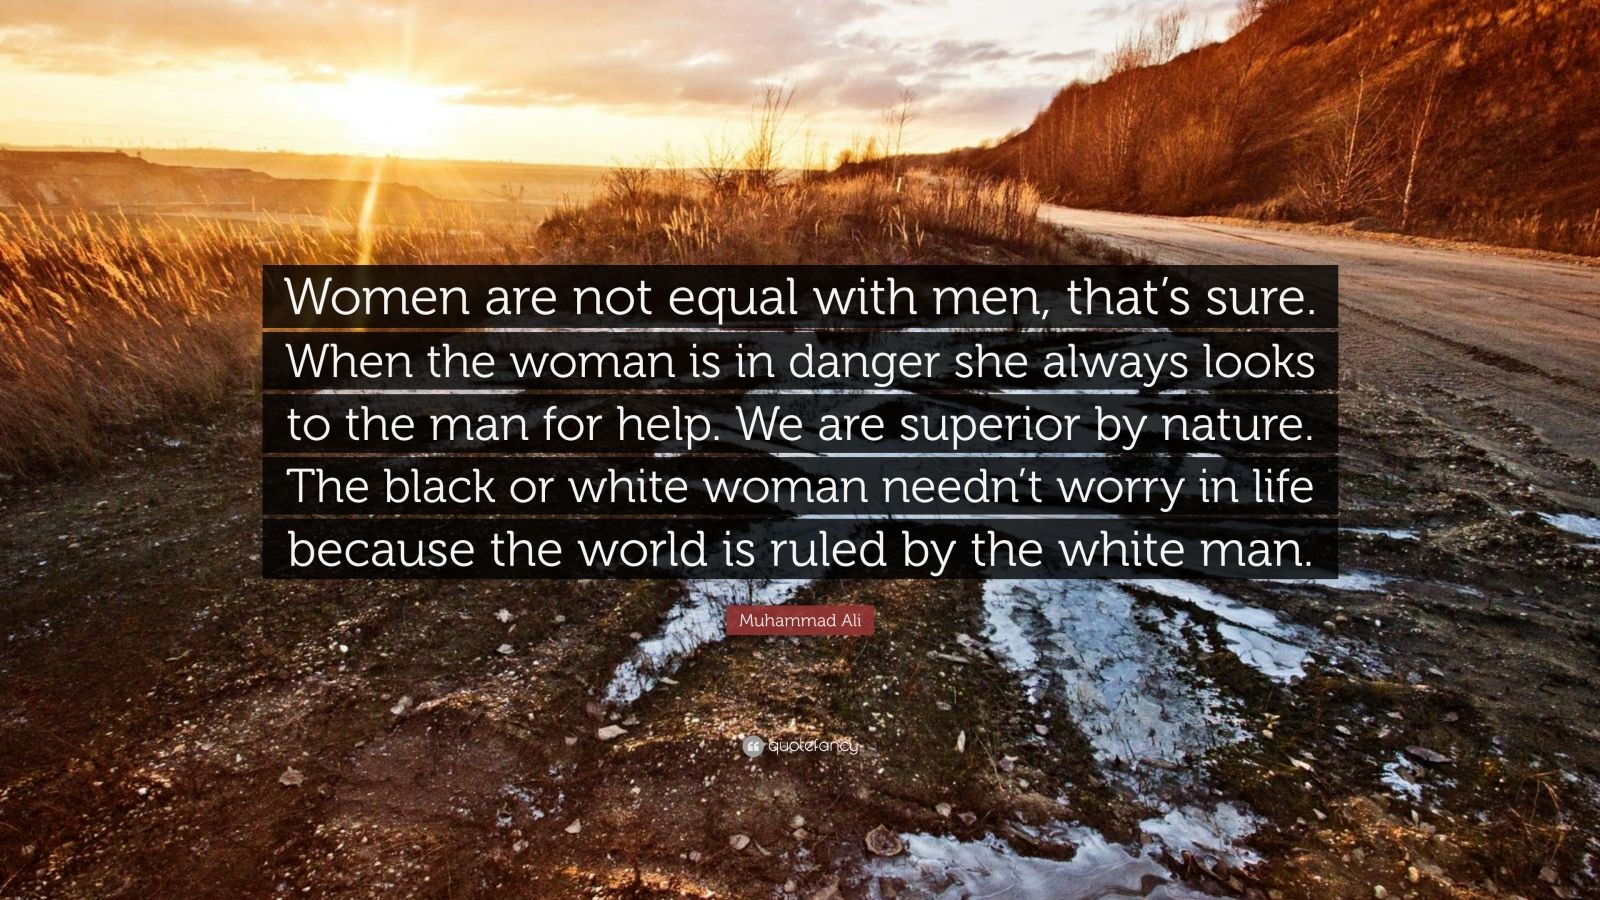 "Muhammad Ali Quote: ""Women are not equal with men, that's sure. When the woman is in danger she always looks to the man for help. We are superior by nature. The black or white woman needn't worry in life because the world is ruled by the white man."""